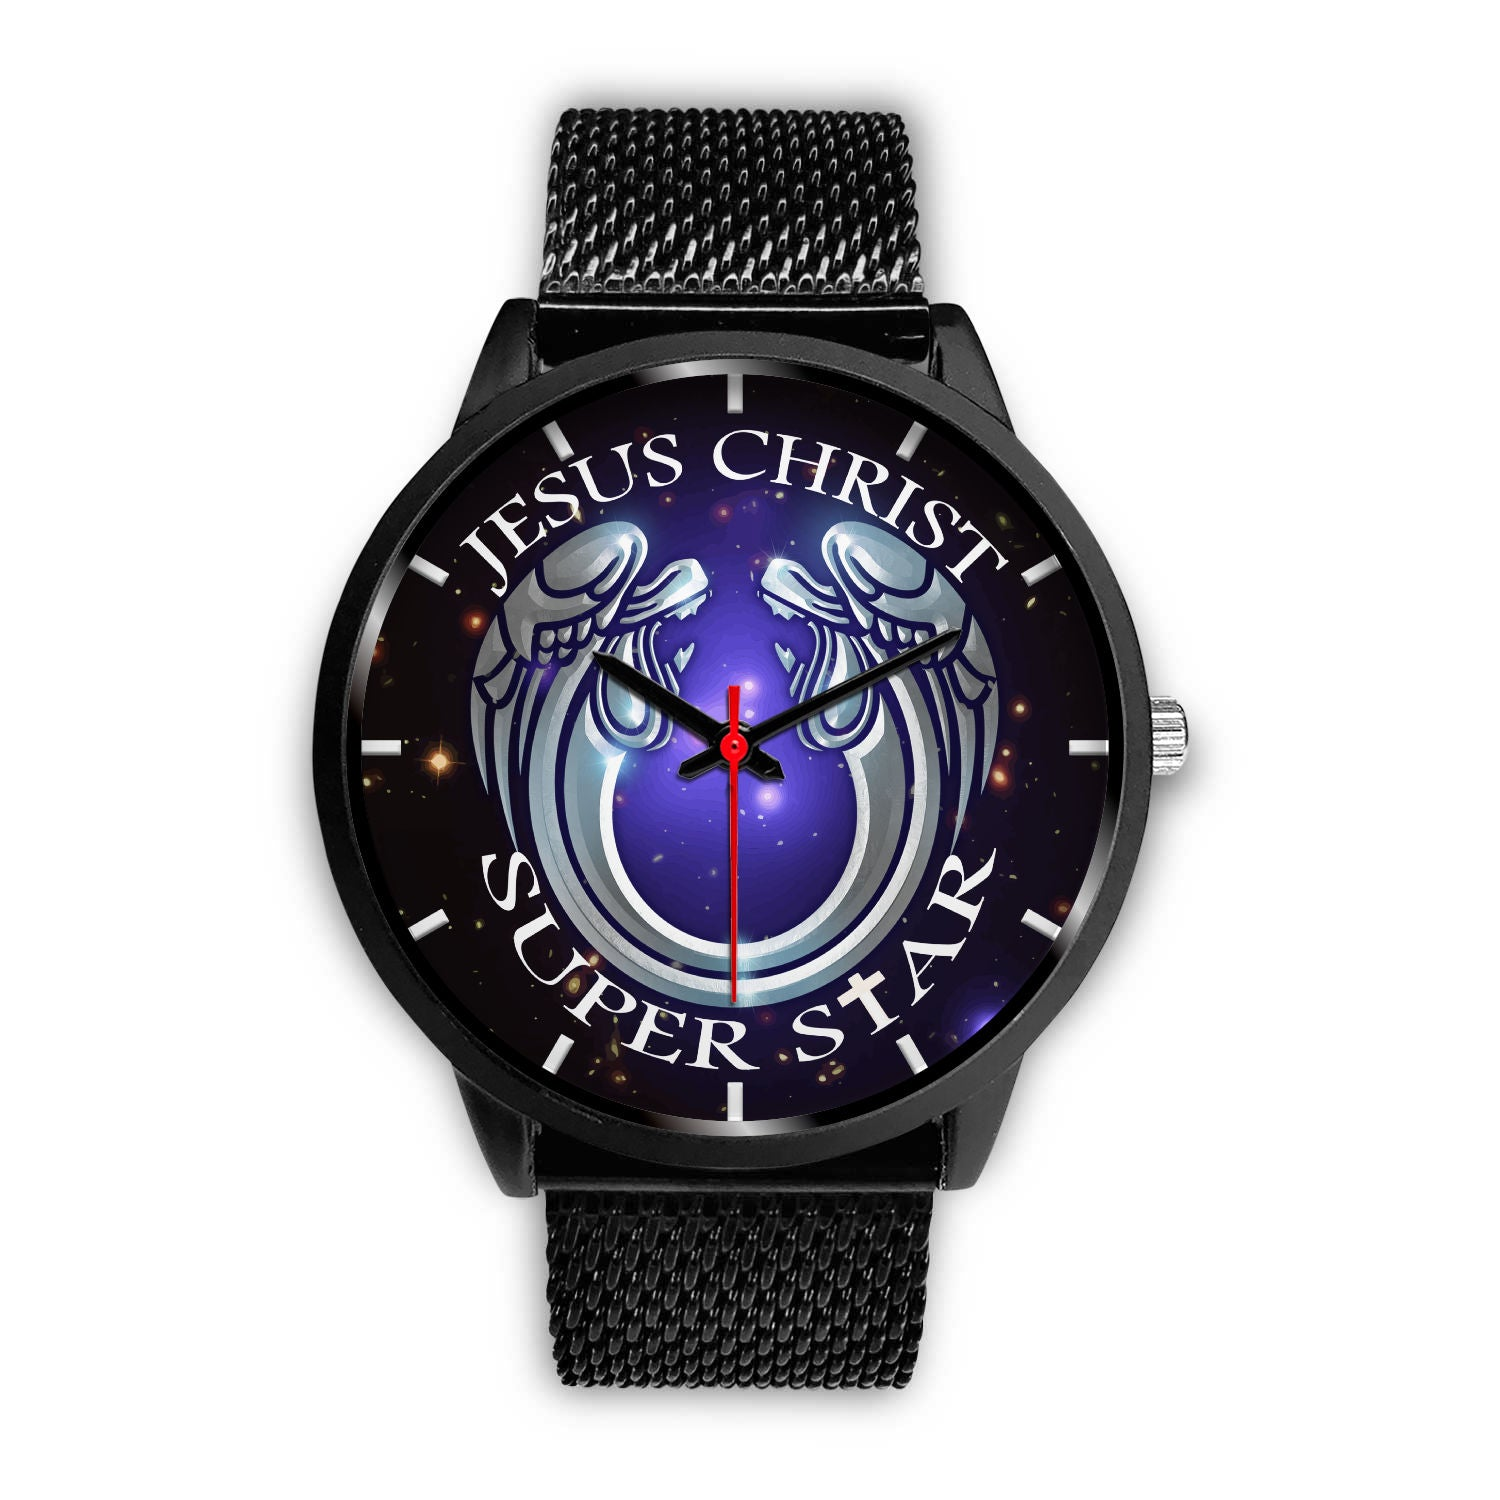 VIRA Black Stainless Steel Watch For Jesus Lovers